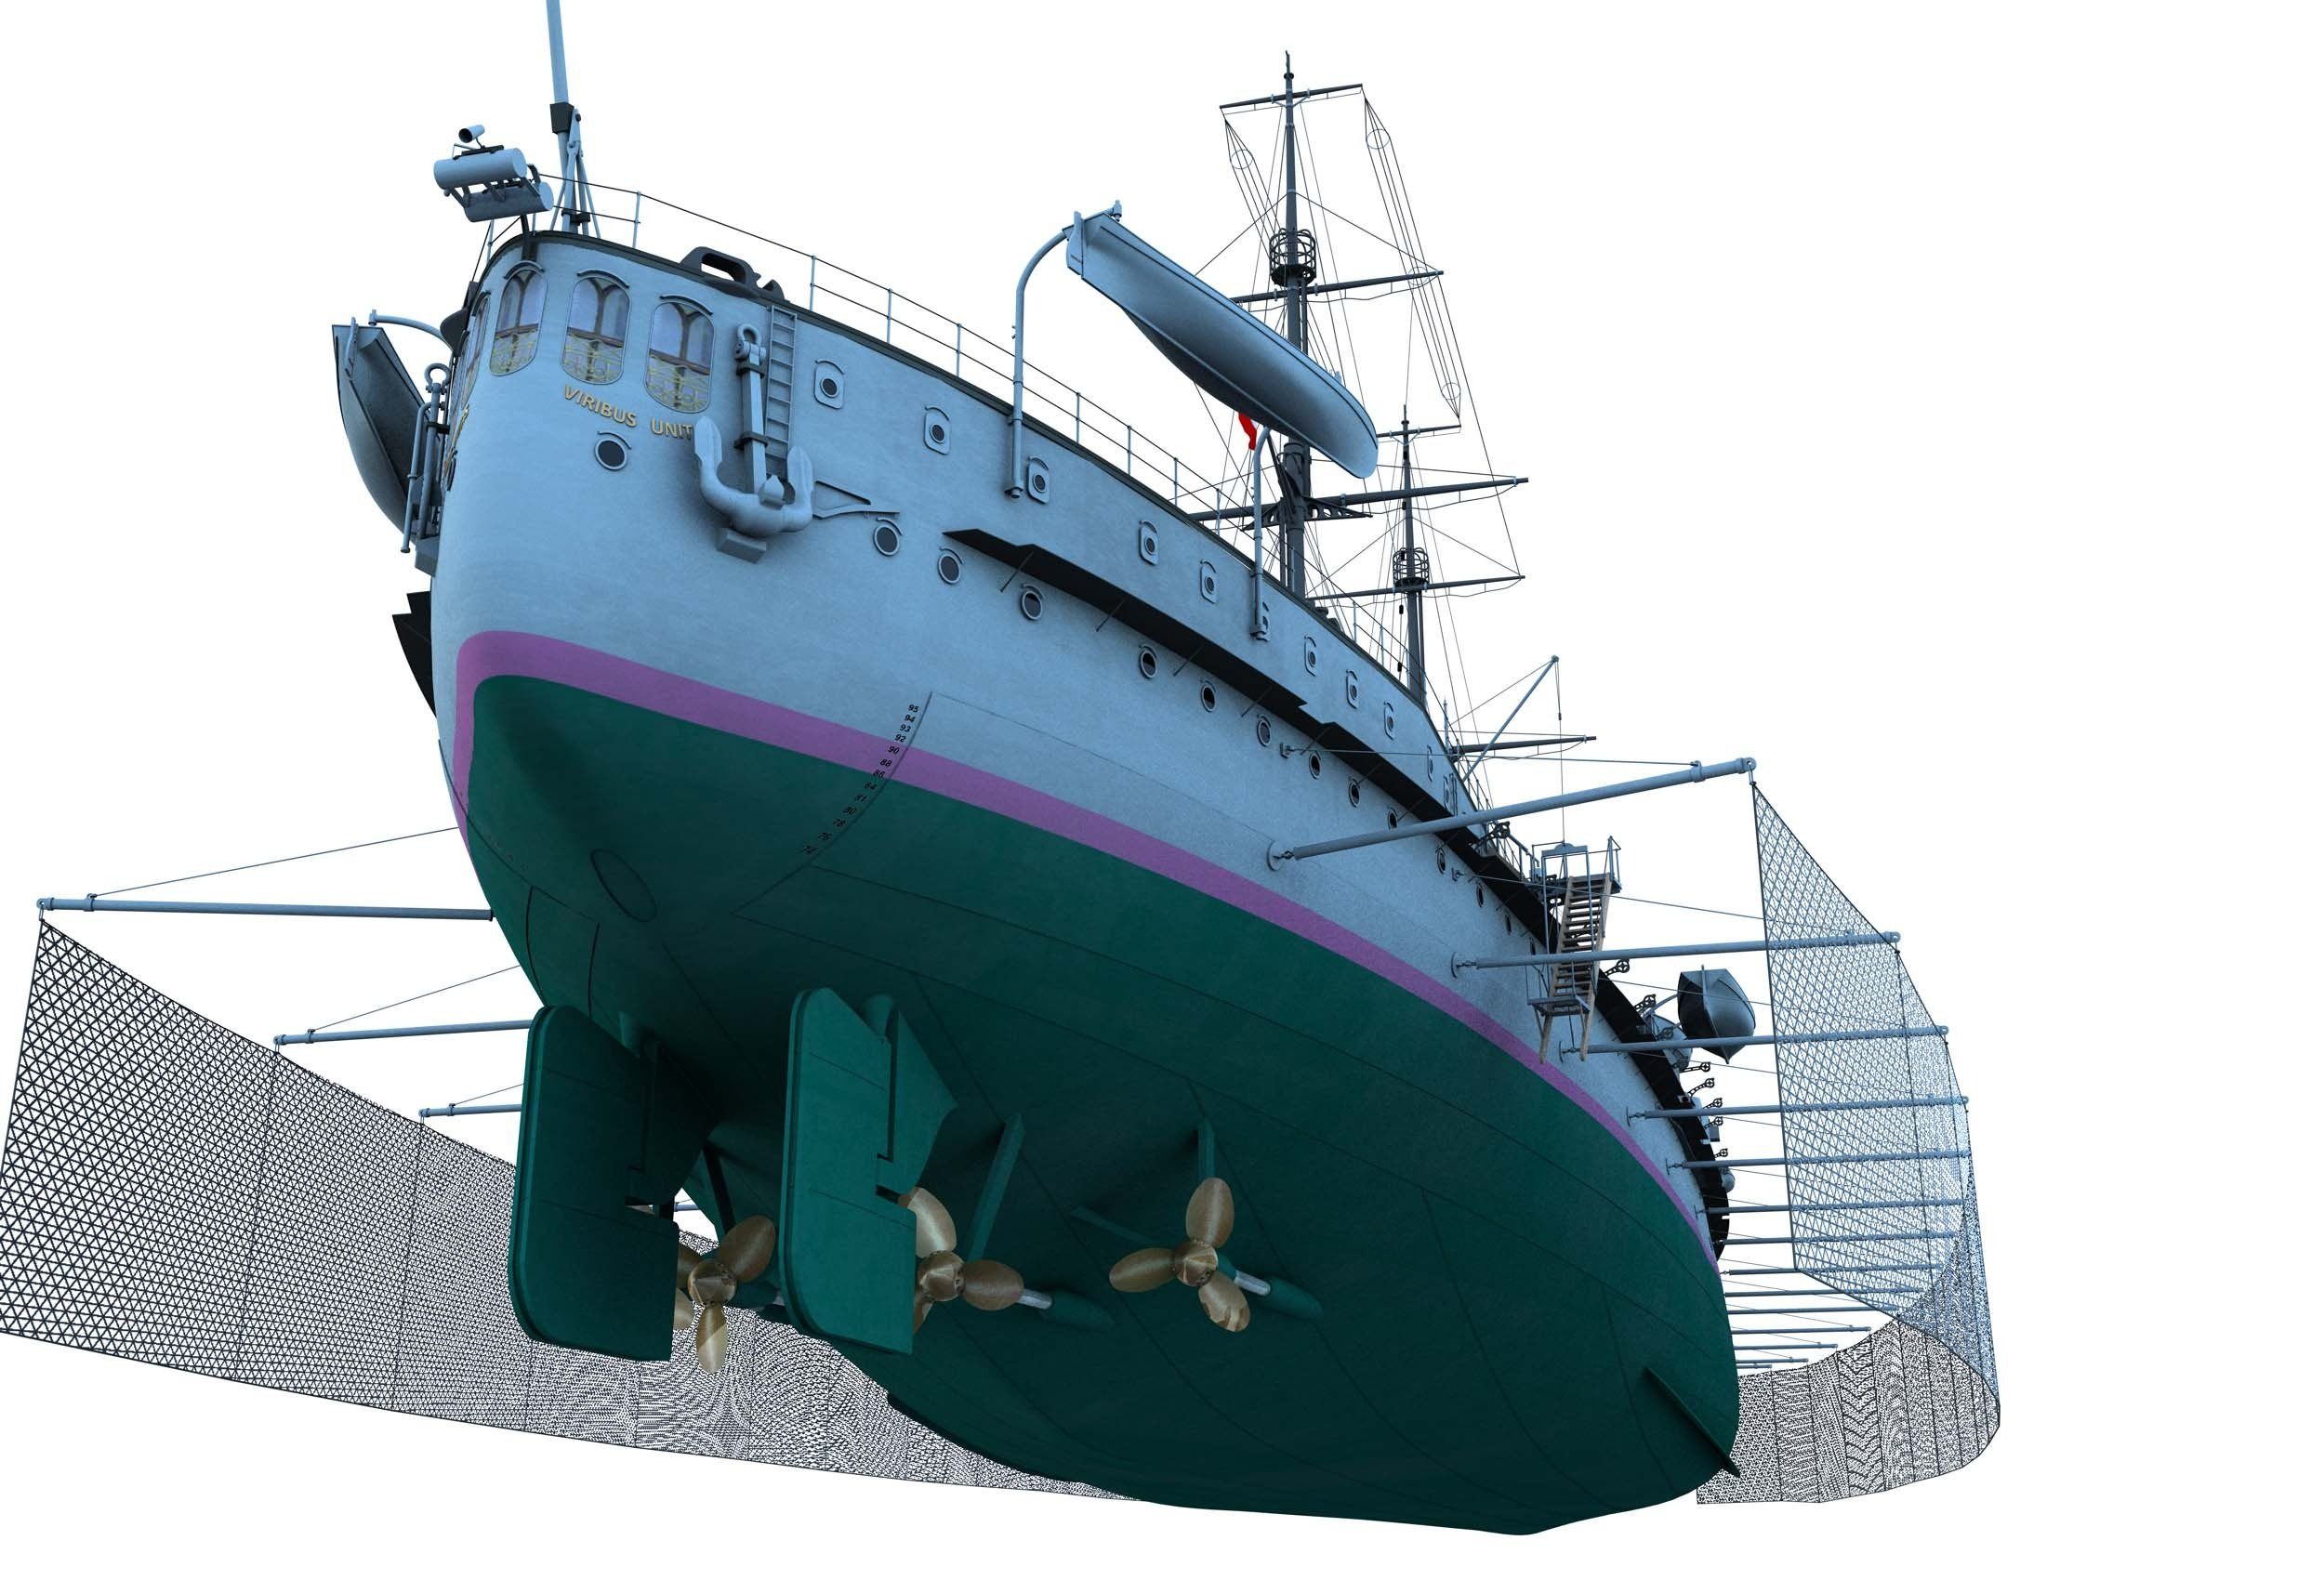 https://0901.nccdn.net/4_2/000/000/001/abd/CK123-Partial-Ship-Stern-Rudders-with-Torpedo-Nets-Swung-out-2500x1700.jpg